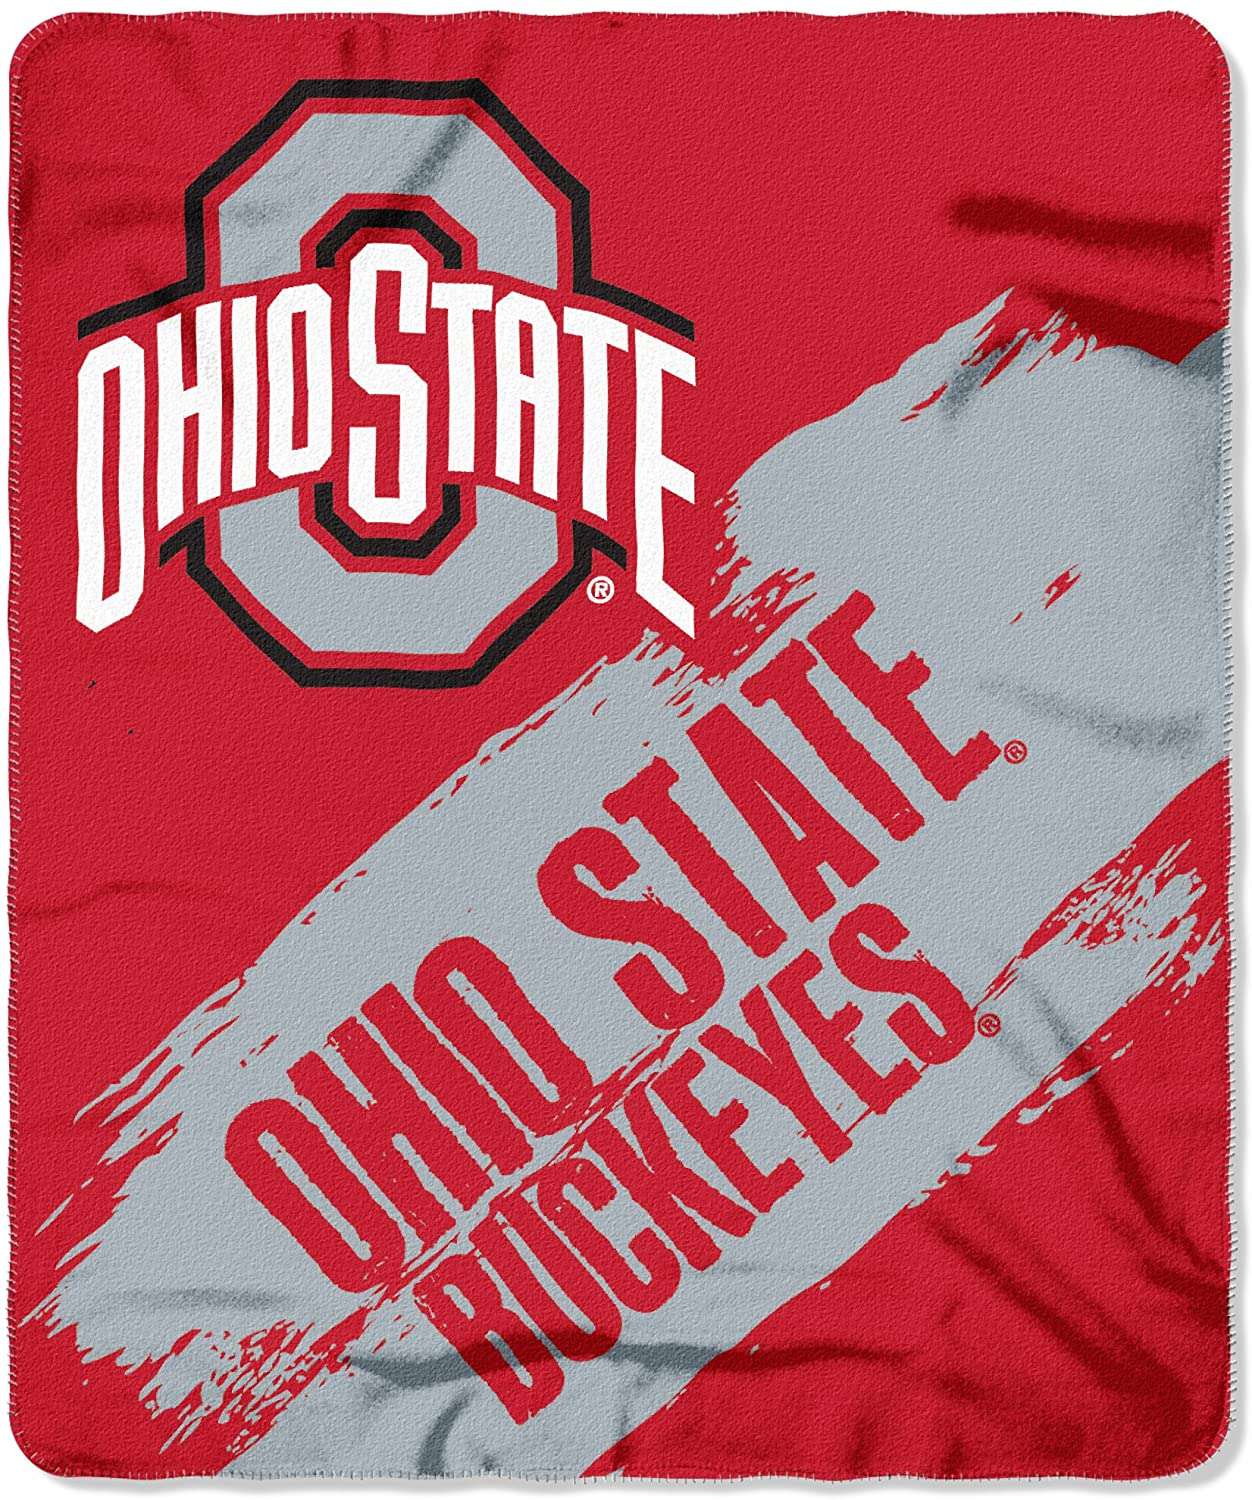 Officially Licensed Ncaa Printed Throw Ohio State Buckeyes Fleece Blanket